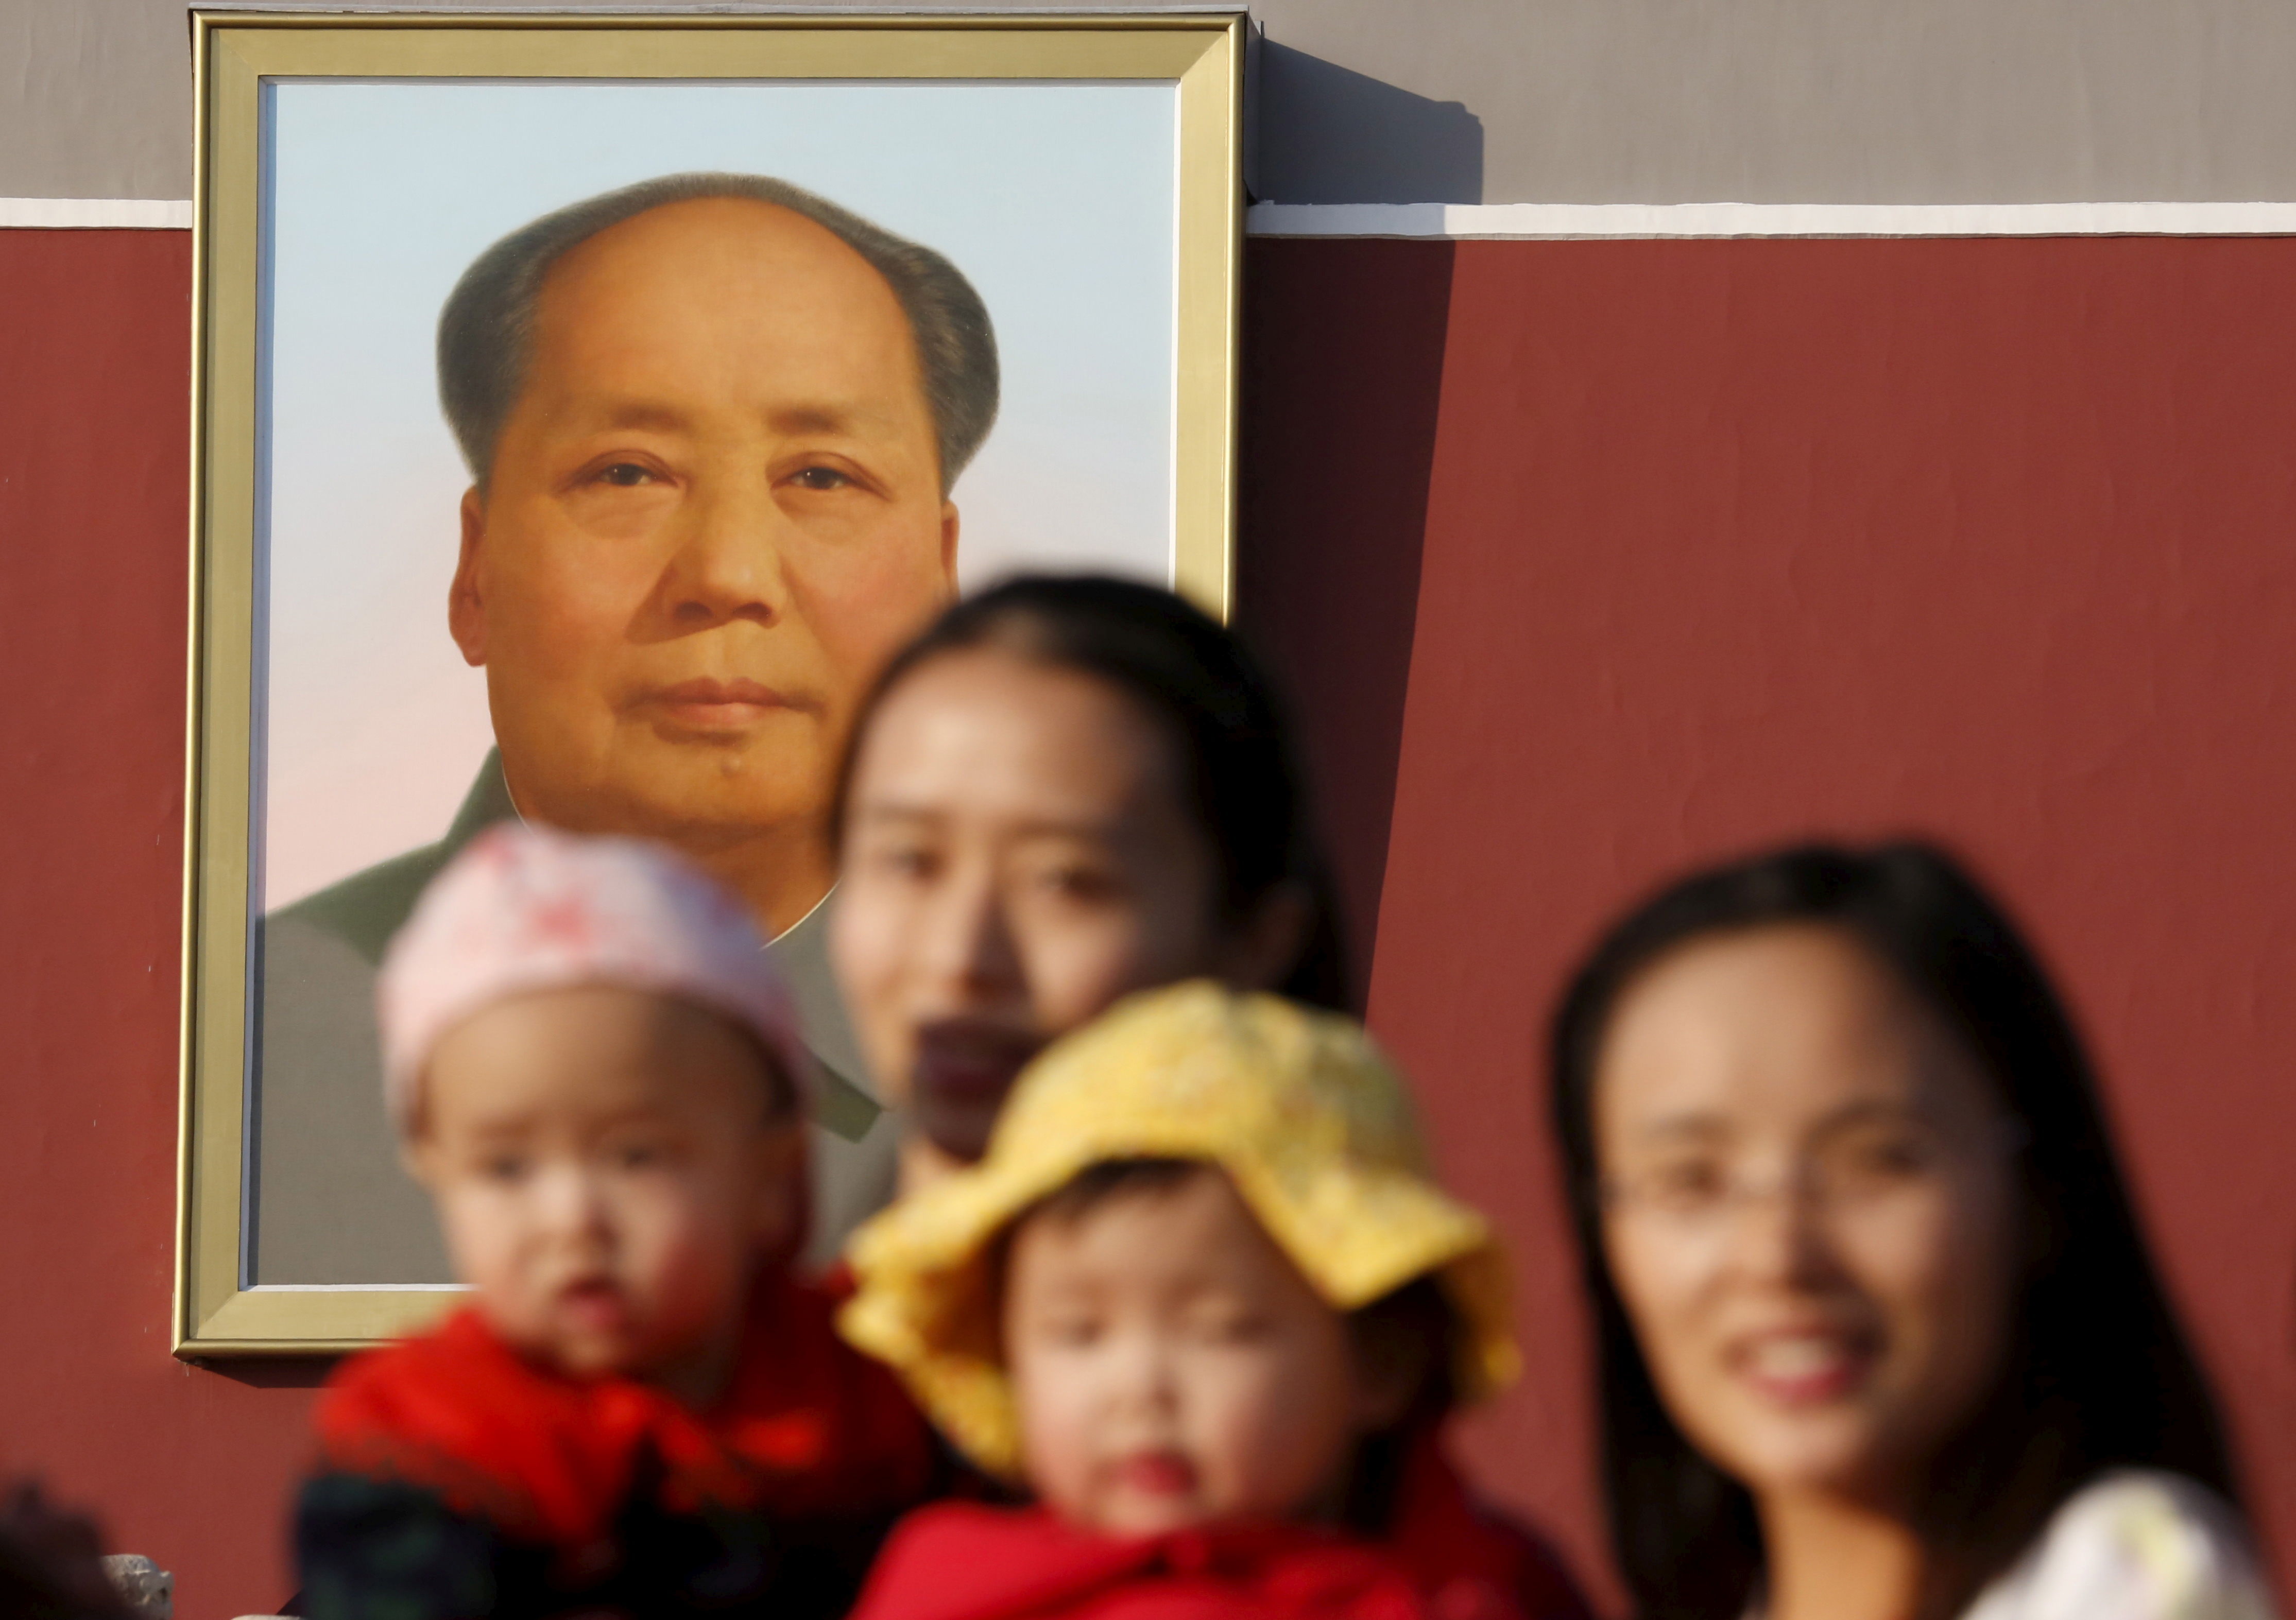 Two women and their babies pose for photographs in front of the giant portrait of late Chinese chairman Mao Zedong on the Tiananmen Gate in Beijing November 2, 2015.  REUTERS/Kim Kyung-Hoon/File Photo - RC2MHN9SUGBY